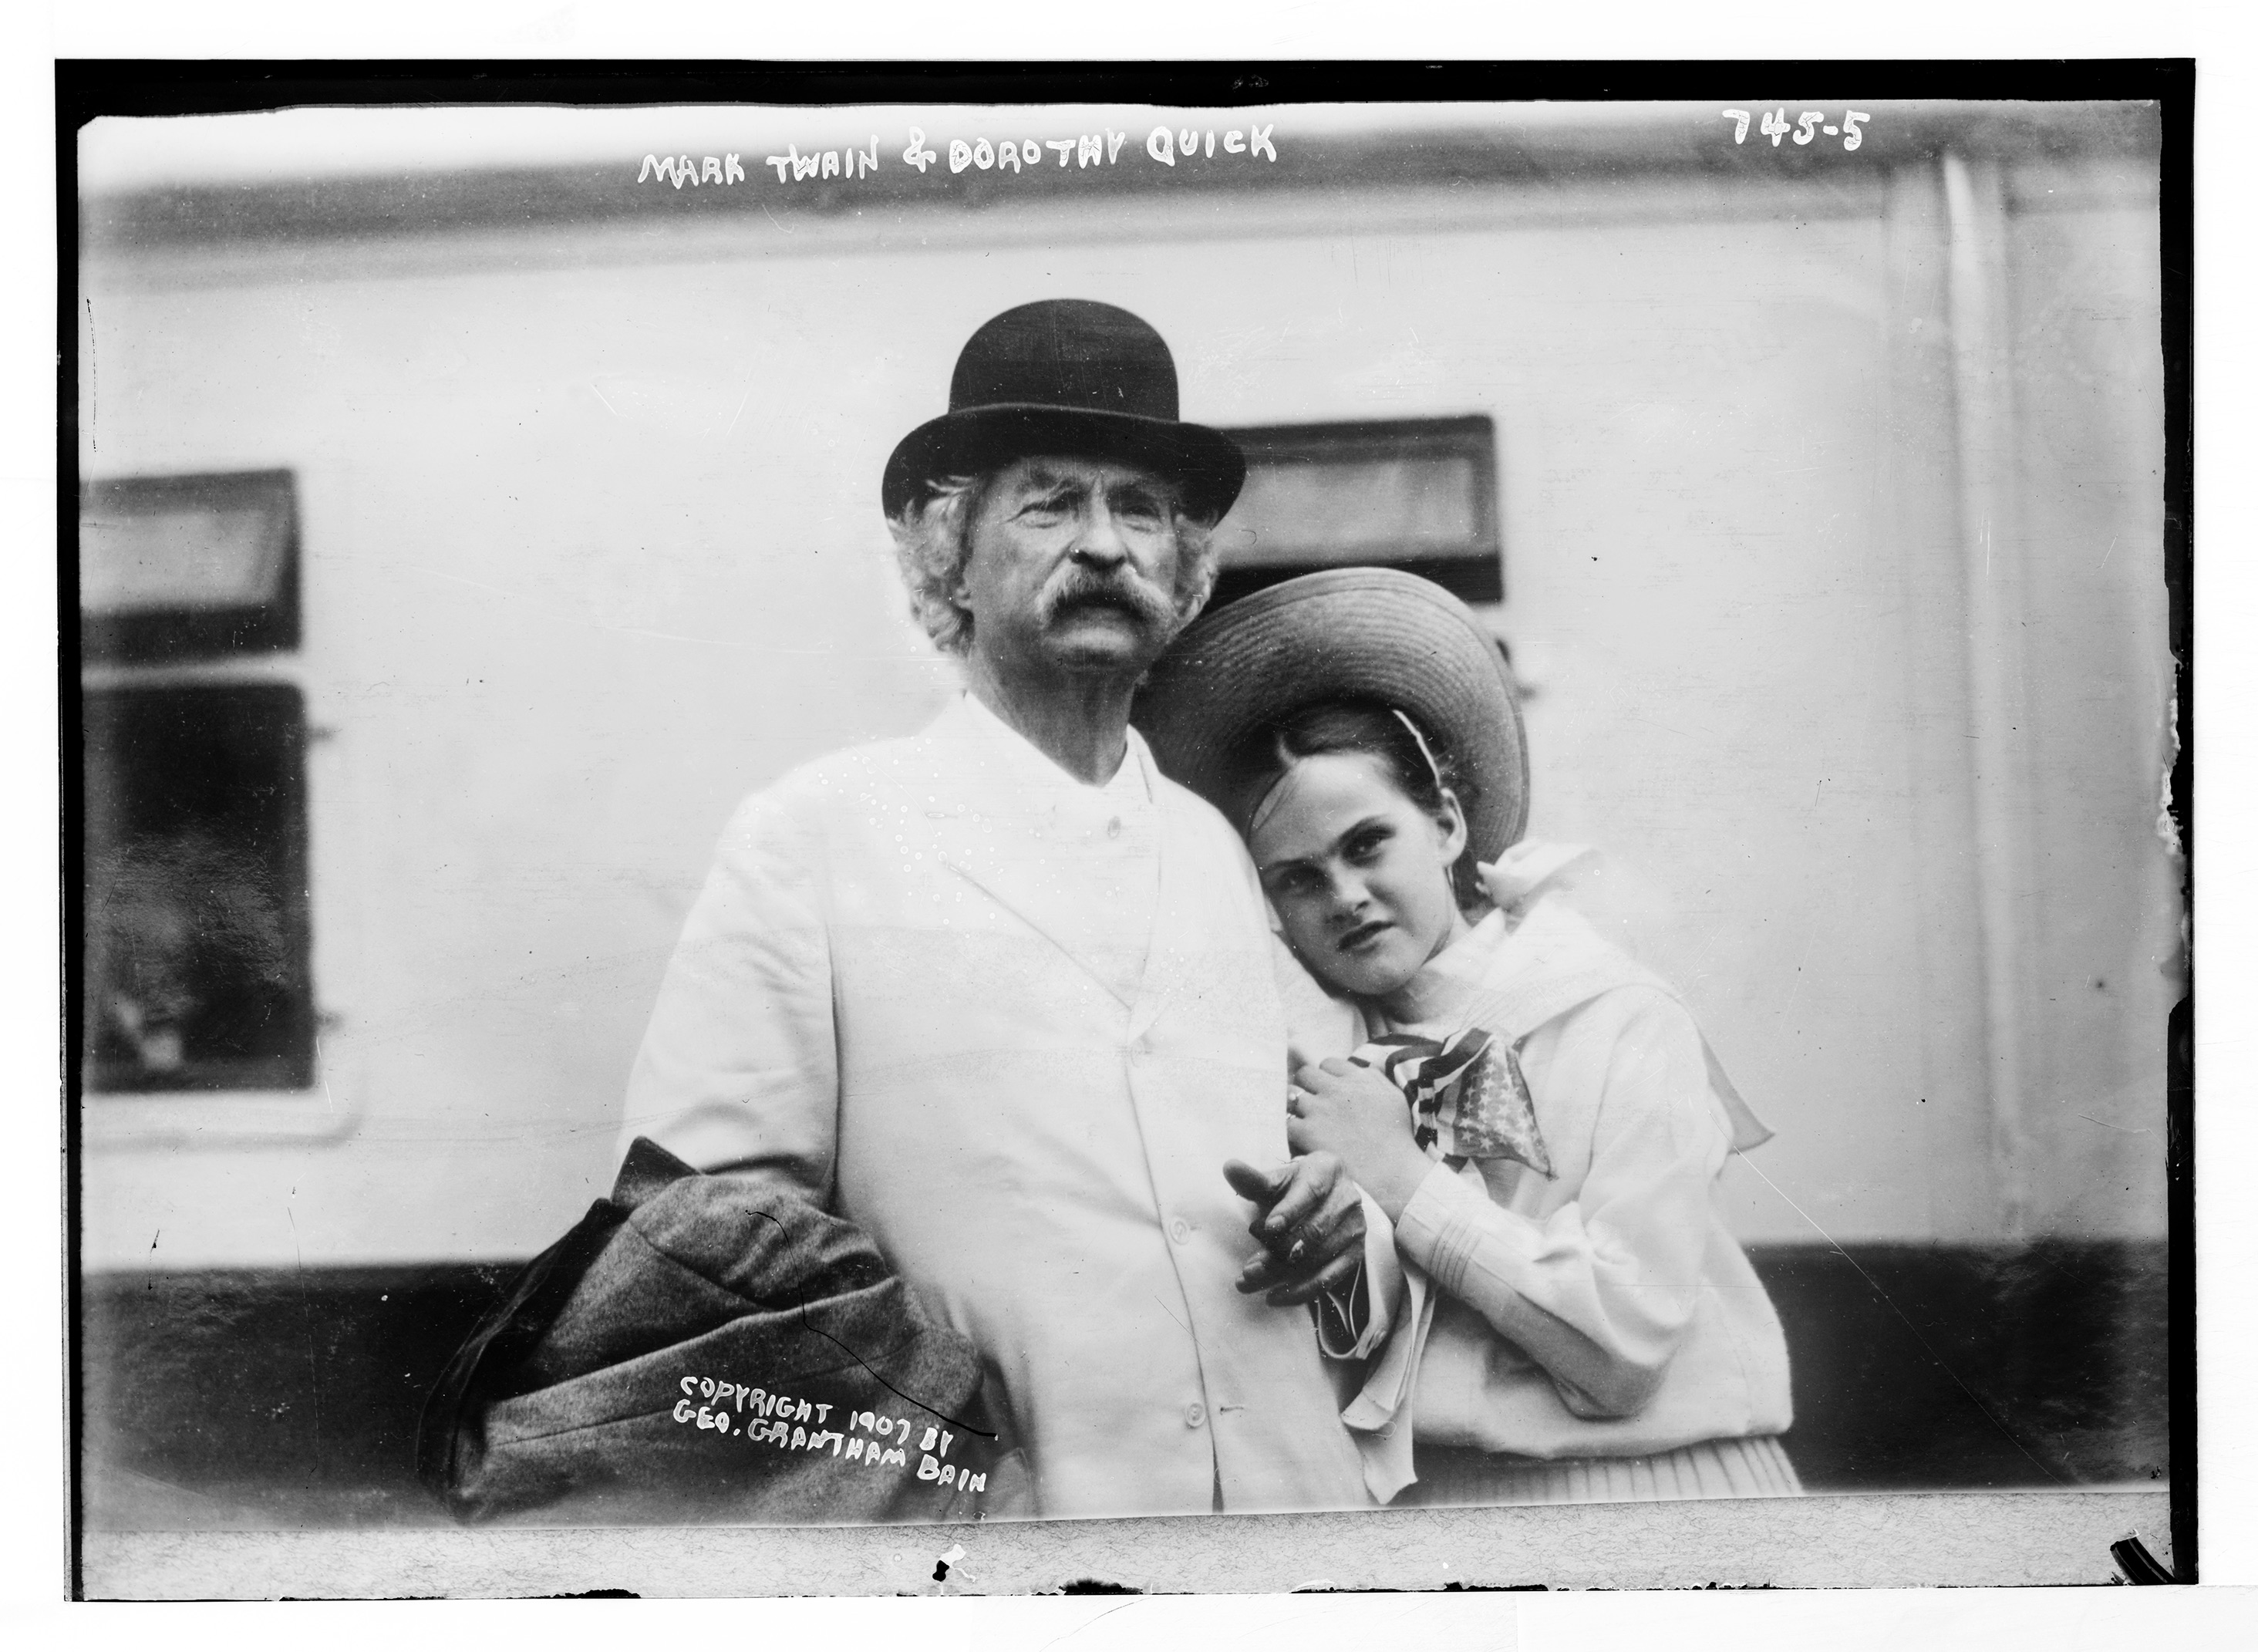 Mark Twain's Disturbing Passion for Collecting Young Girls